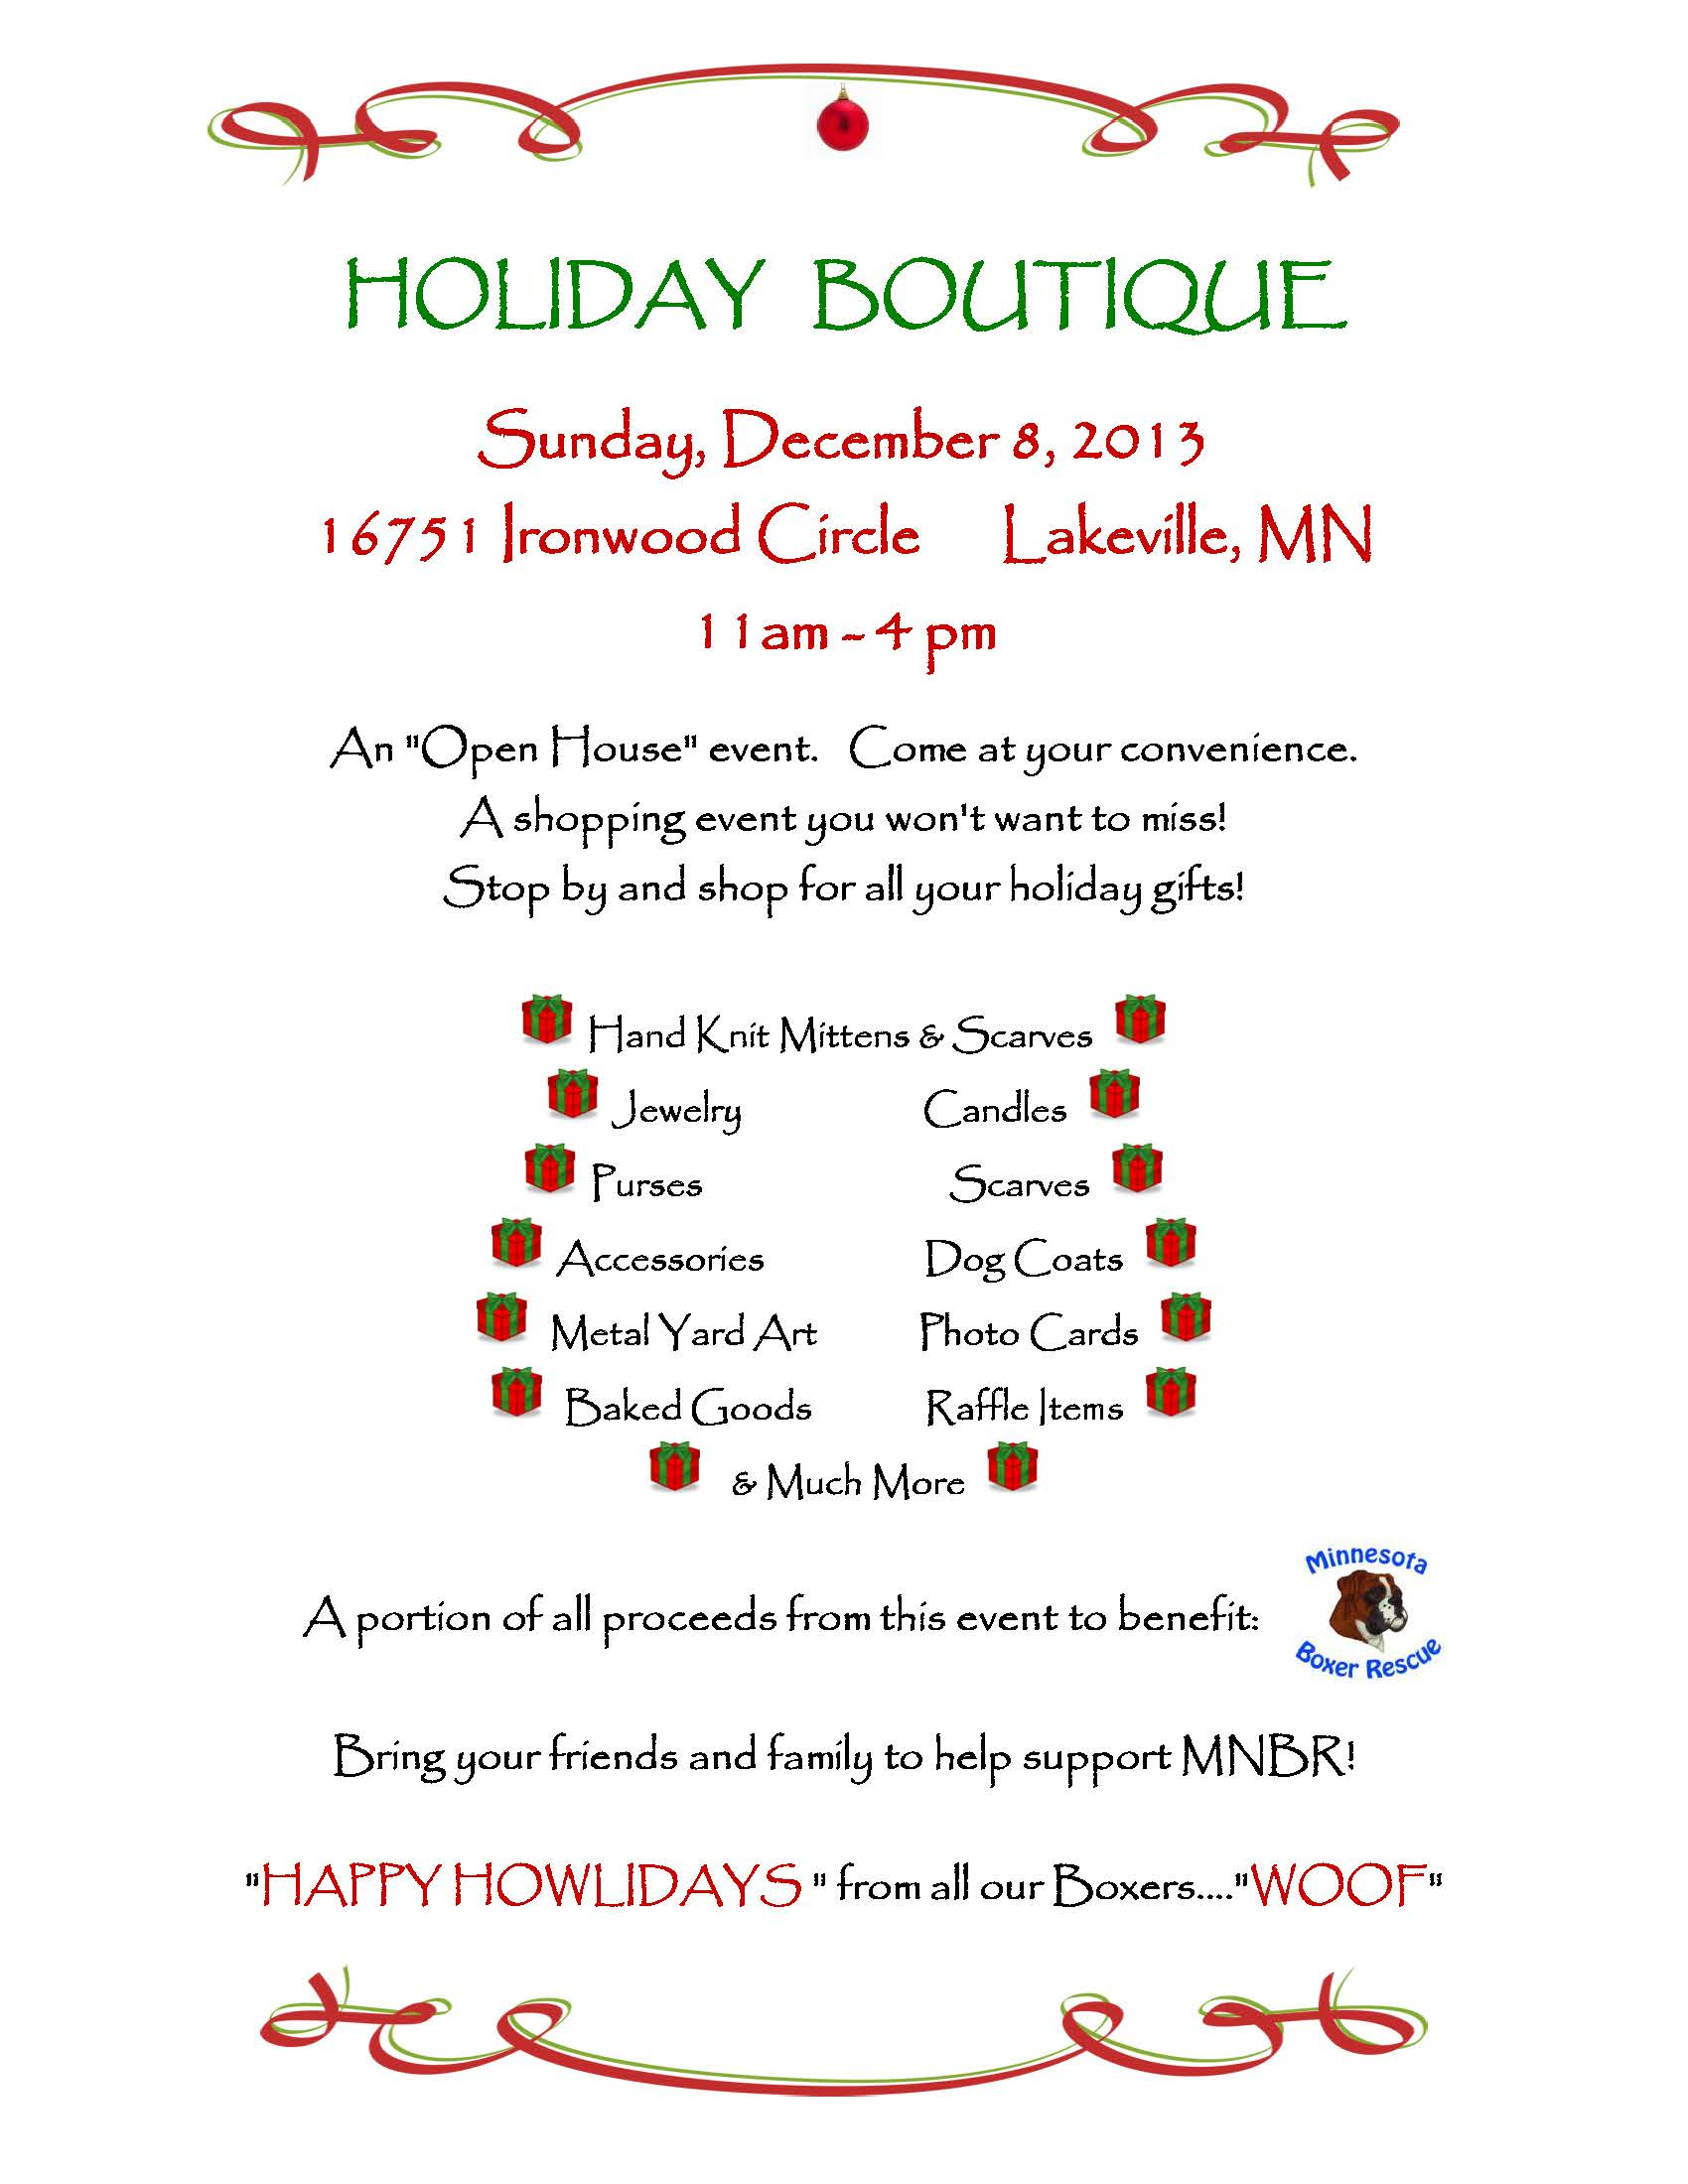 2013 Holiday Boutique